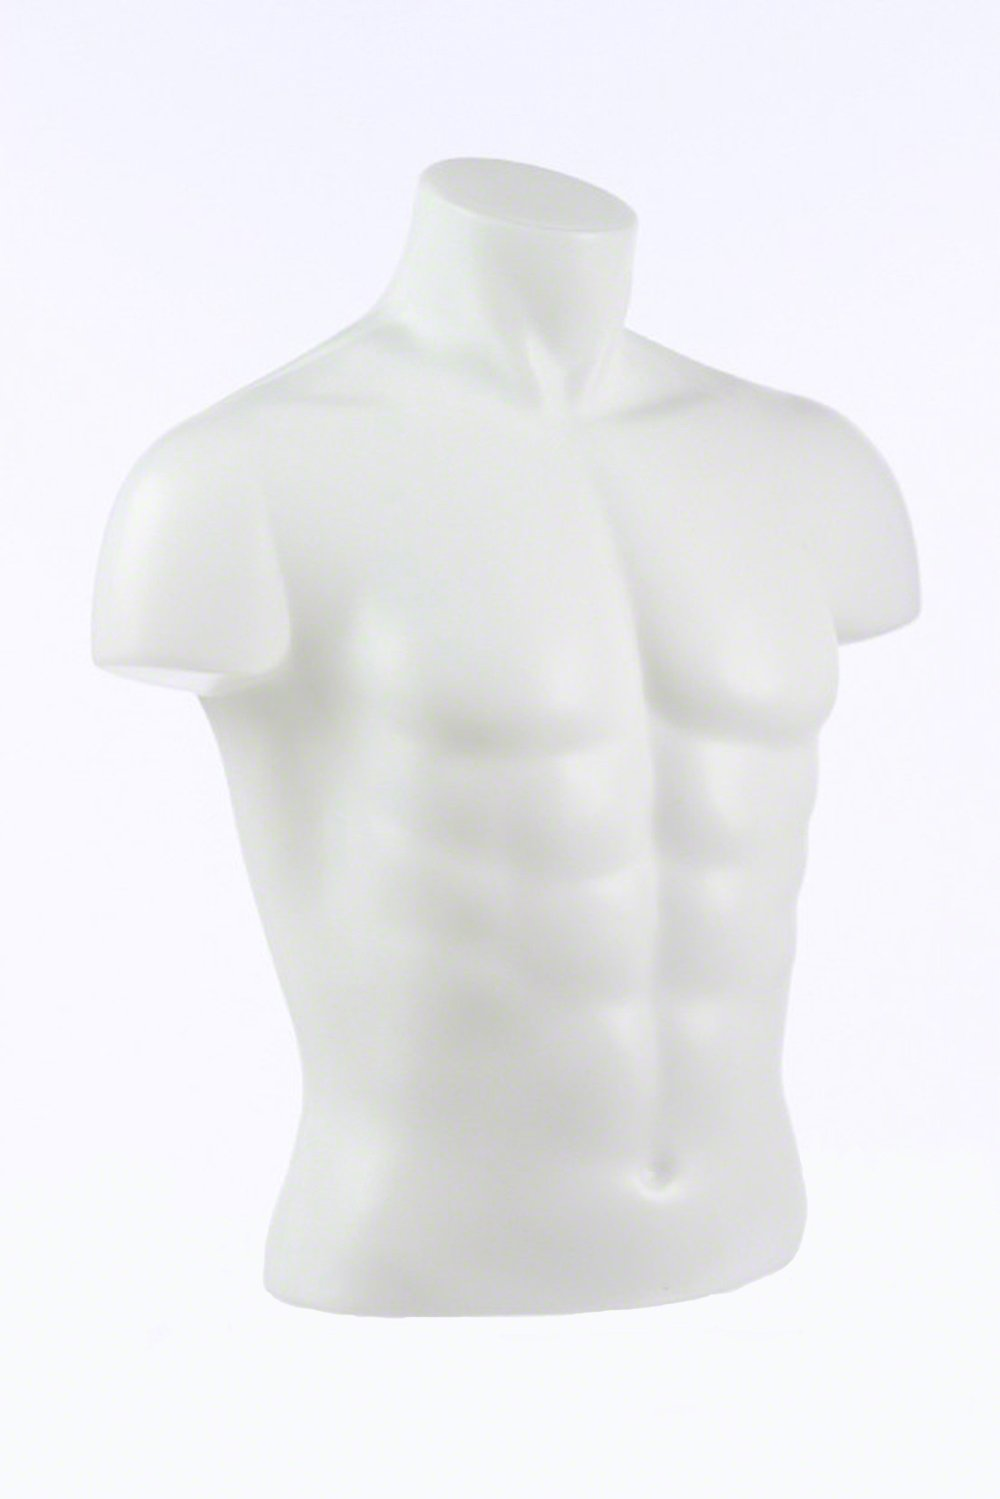 Male Torso Form 5/8'' Stand Fitting, White